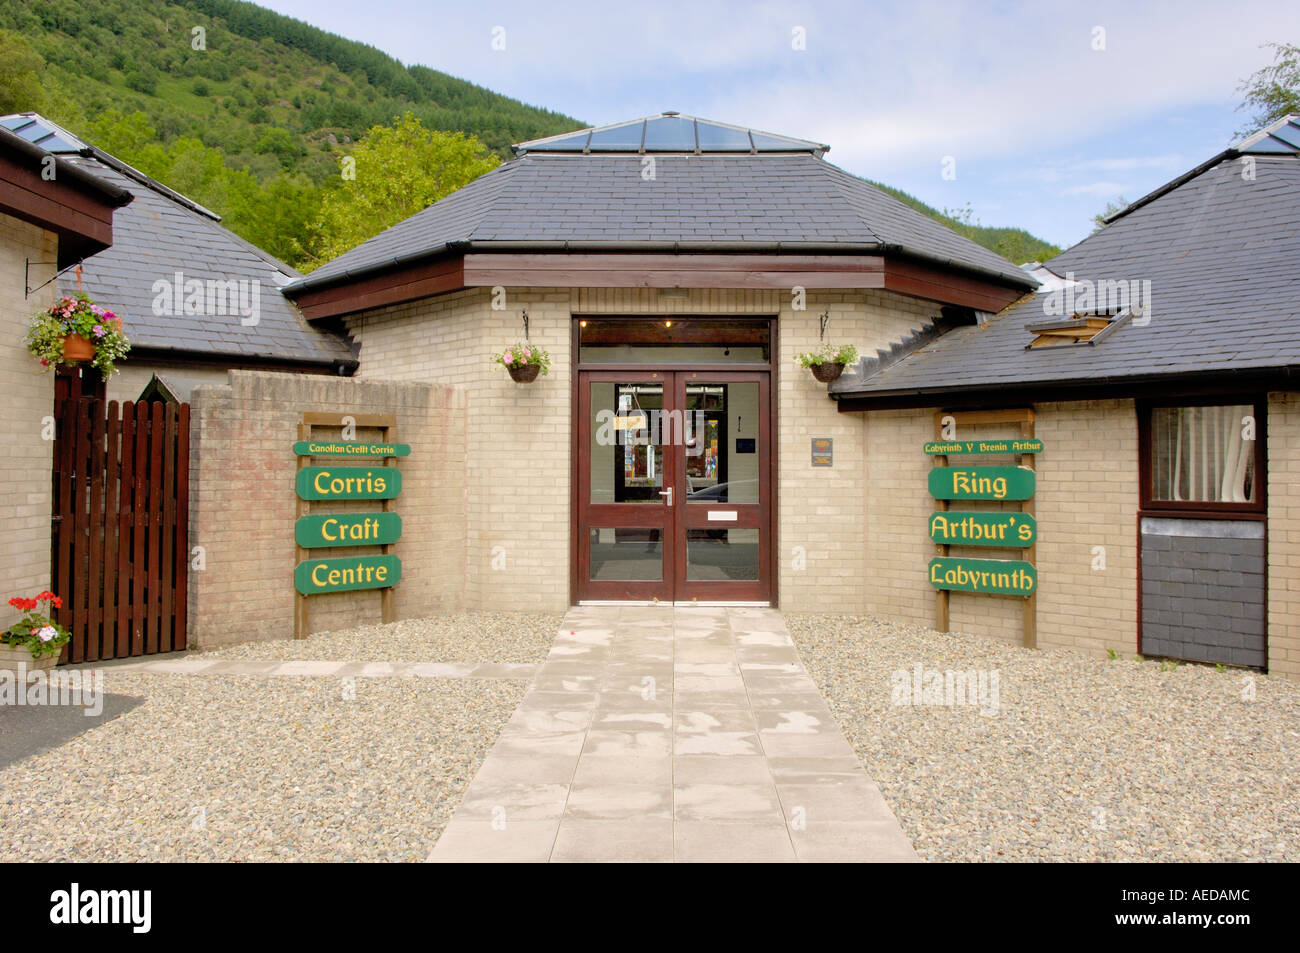 Entrance Corris Craft Centre and King Arthur s Labyrinth Corris North West Wales Stock Photo